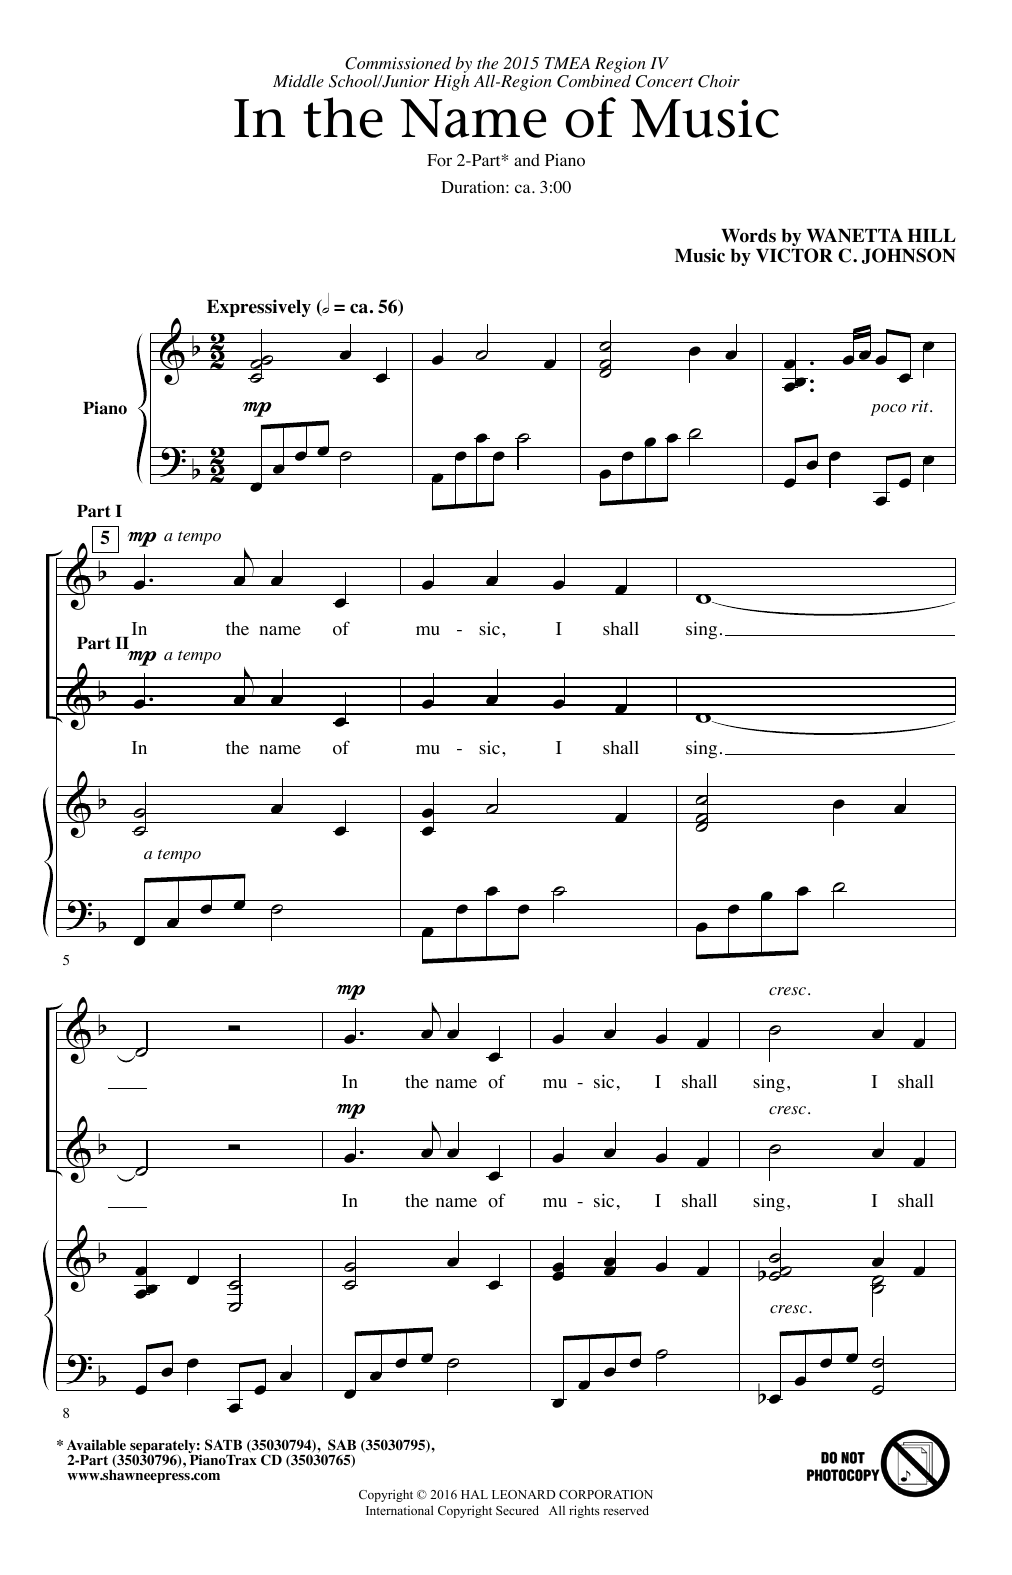 Victor C. Johnson In The Name Of Music sheet music notes and chords. Download Printable PDF.